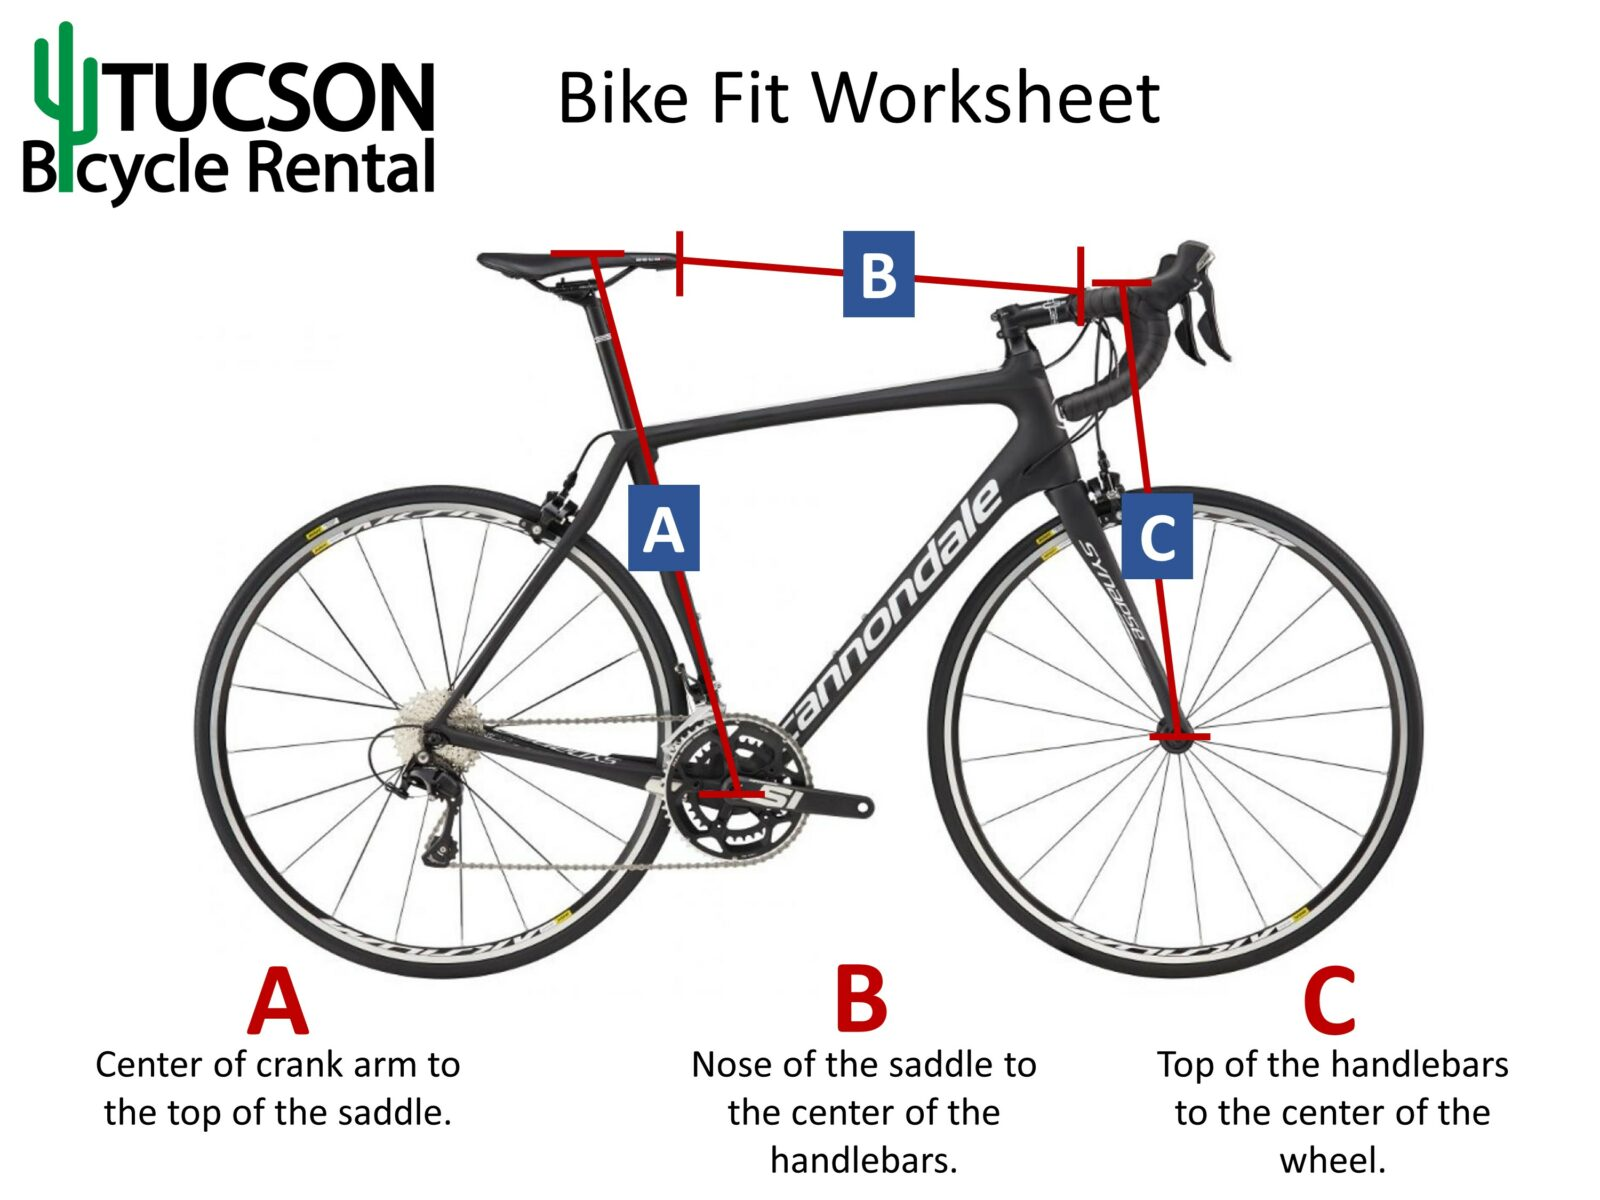 Tucson Bicyle Rental Bike Fit Worksheet